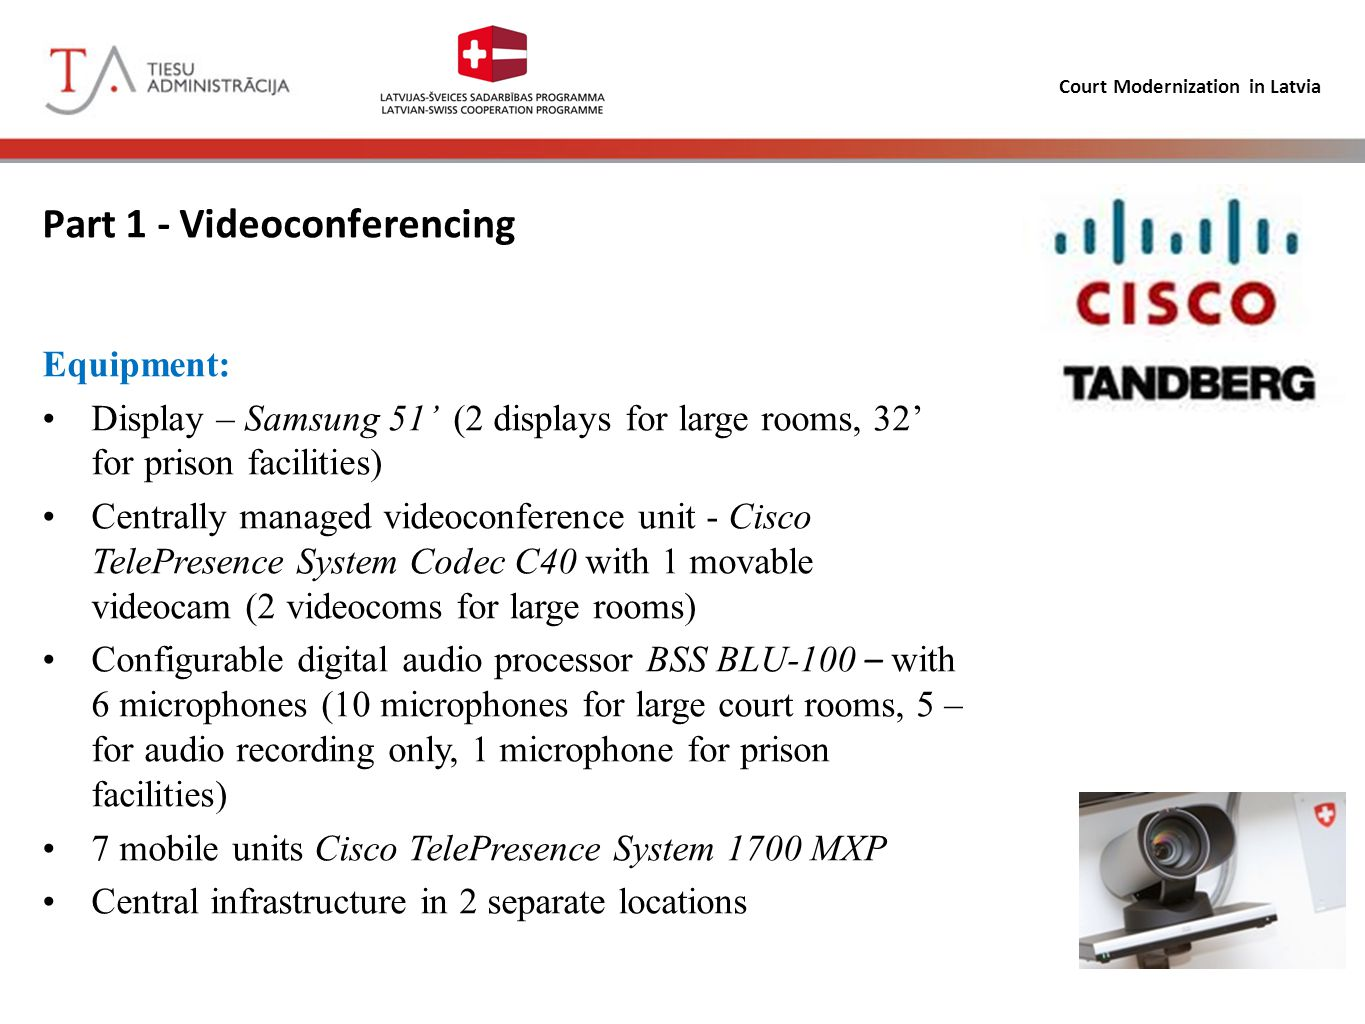 Court Modernization in Latvia Part 1 - Videoconferencing Activities 1 and 2 «Set-up videoconference equipment in courts and prisons», «Set-up audio recording equipment in court proceedings» Computer hardware in court rooms (135 units) Installation of data network wiring in court rooms and prison facilities (>2 m/bits) Additional furniture, curtains and audio storage/playback equipment Development and installation of audio protocol tagging system (in progress) Support for the use of video conference equipment (in progress)